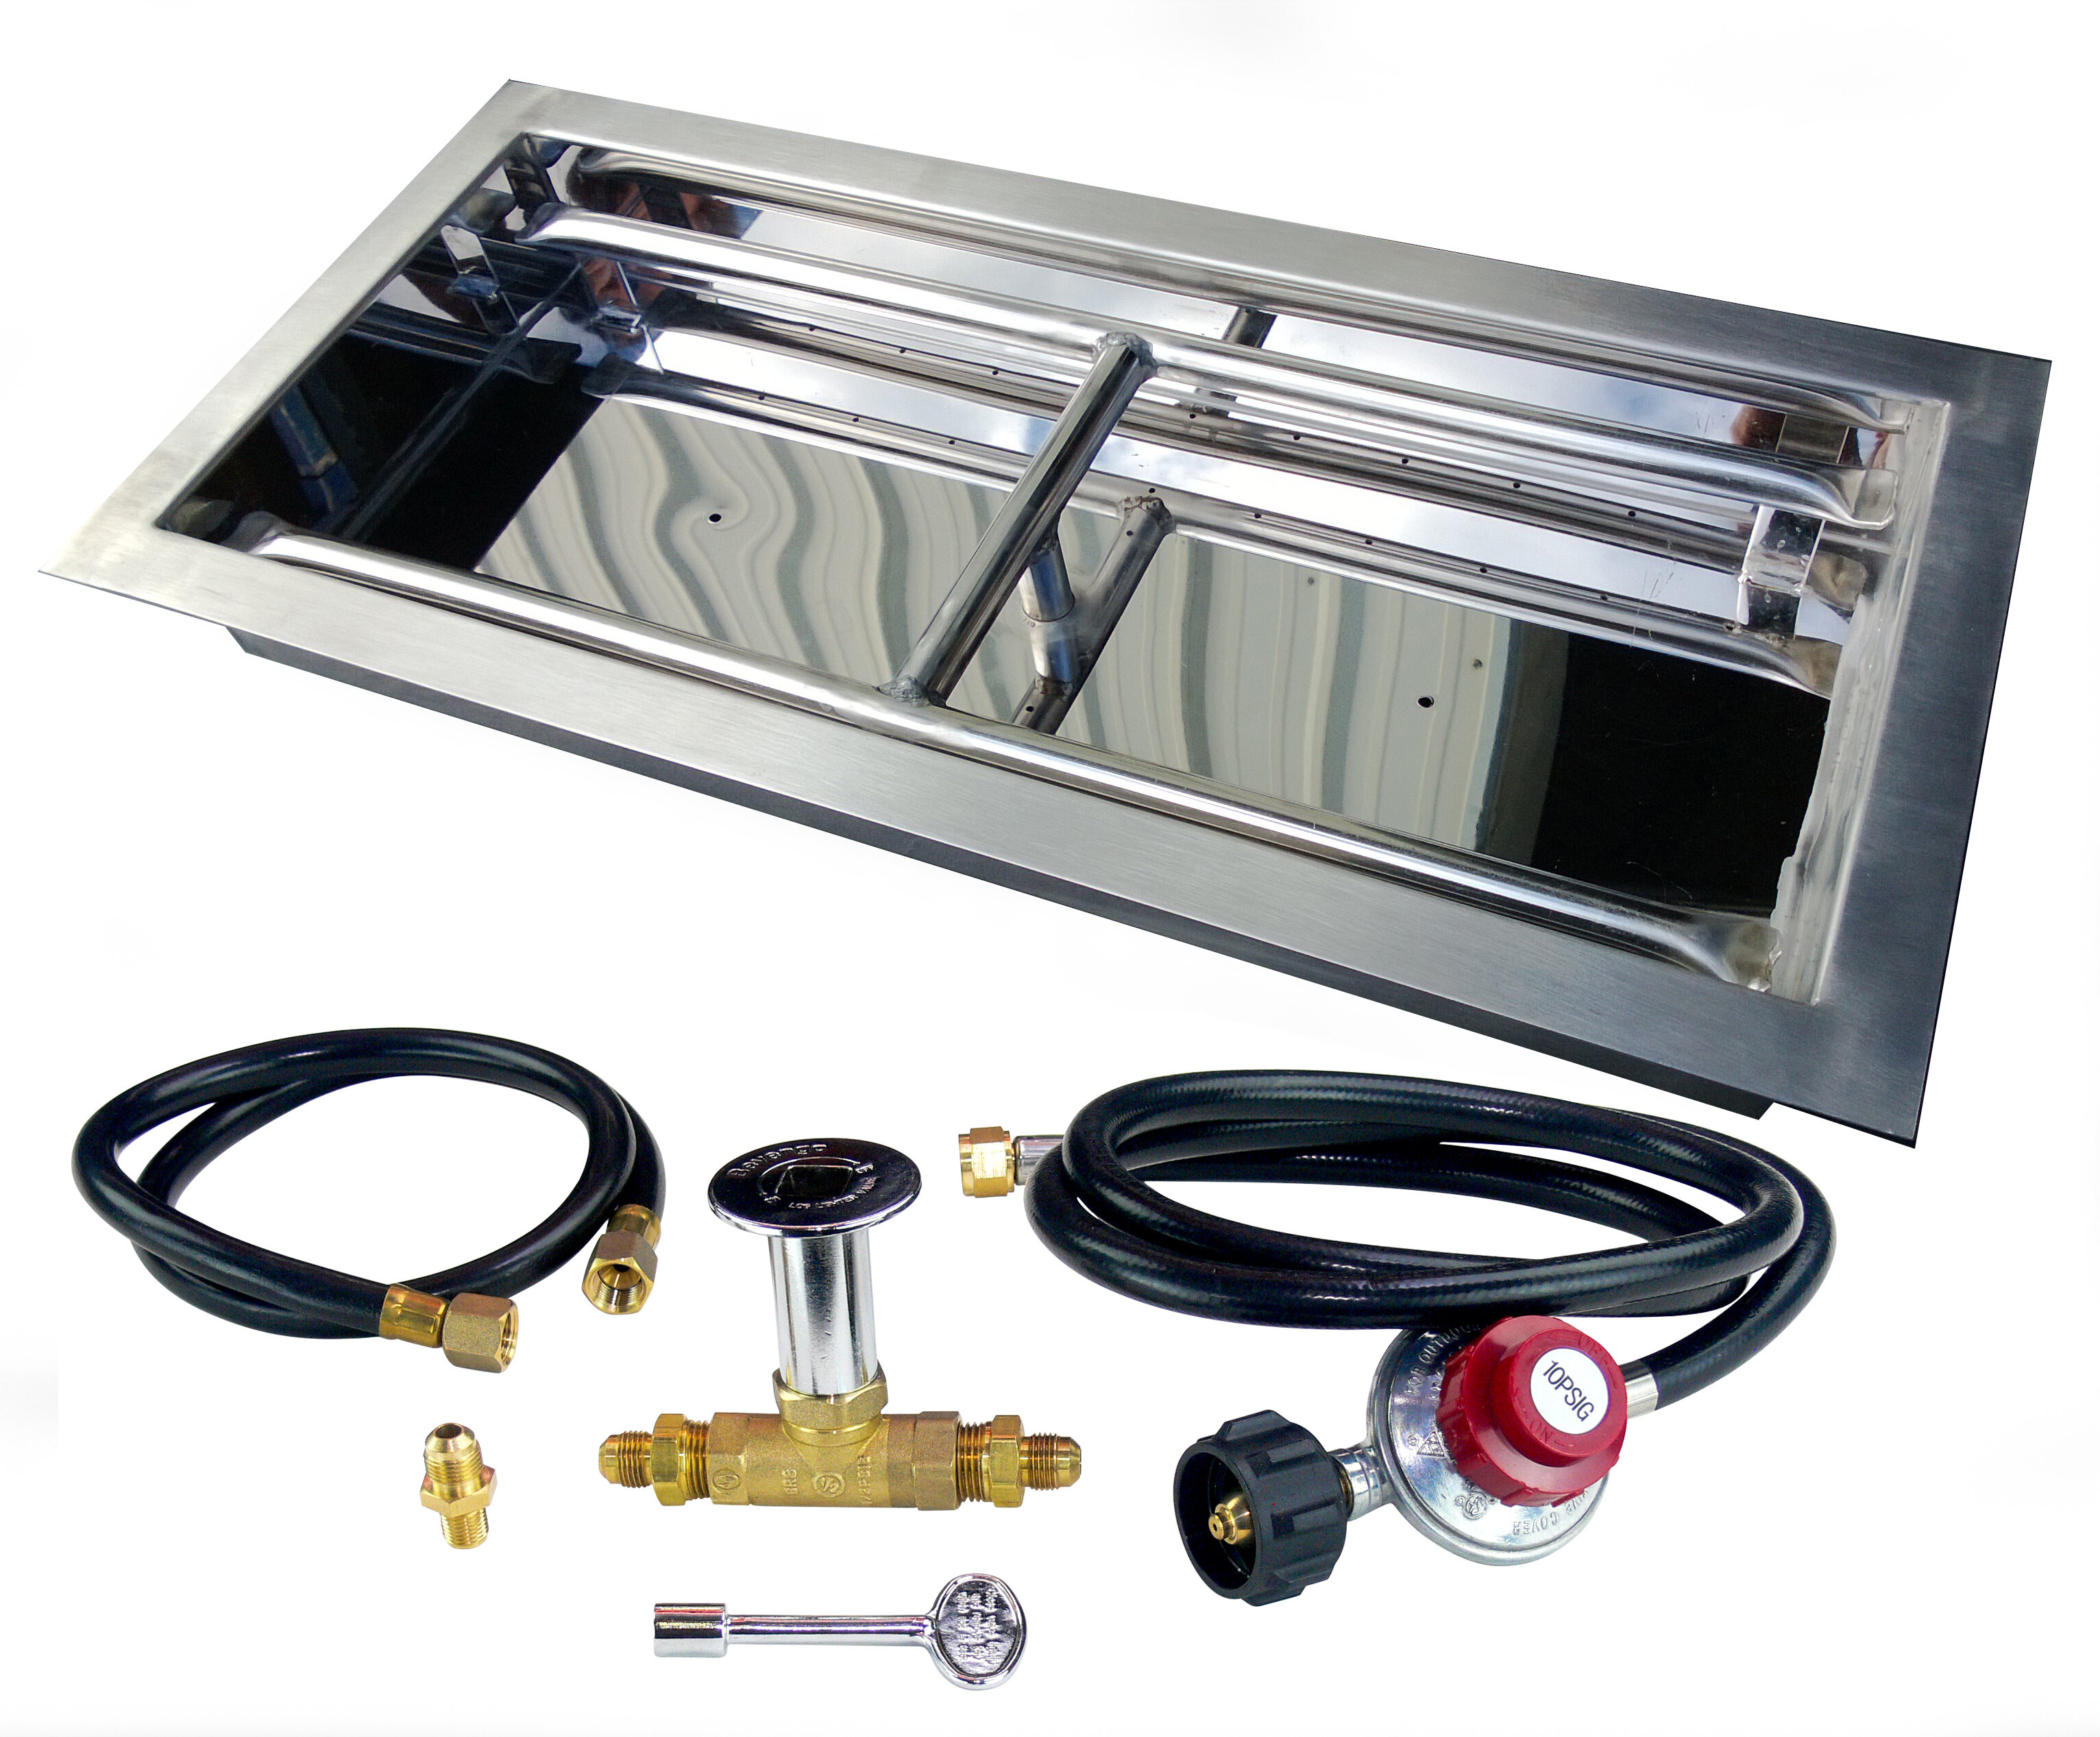 Etco Stainless Steel Drop In Propane Gas Fire Pit Burner Kit Reviews